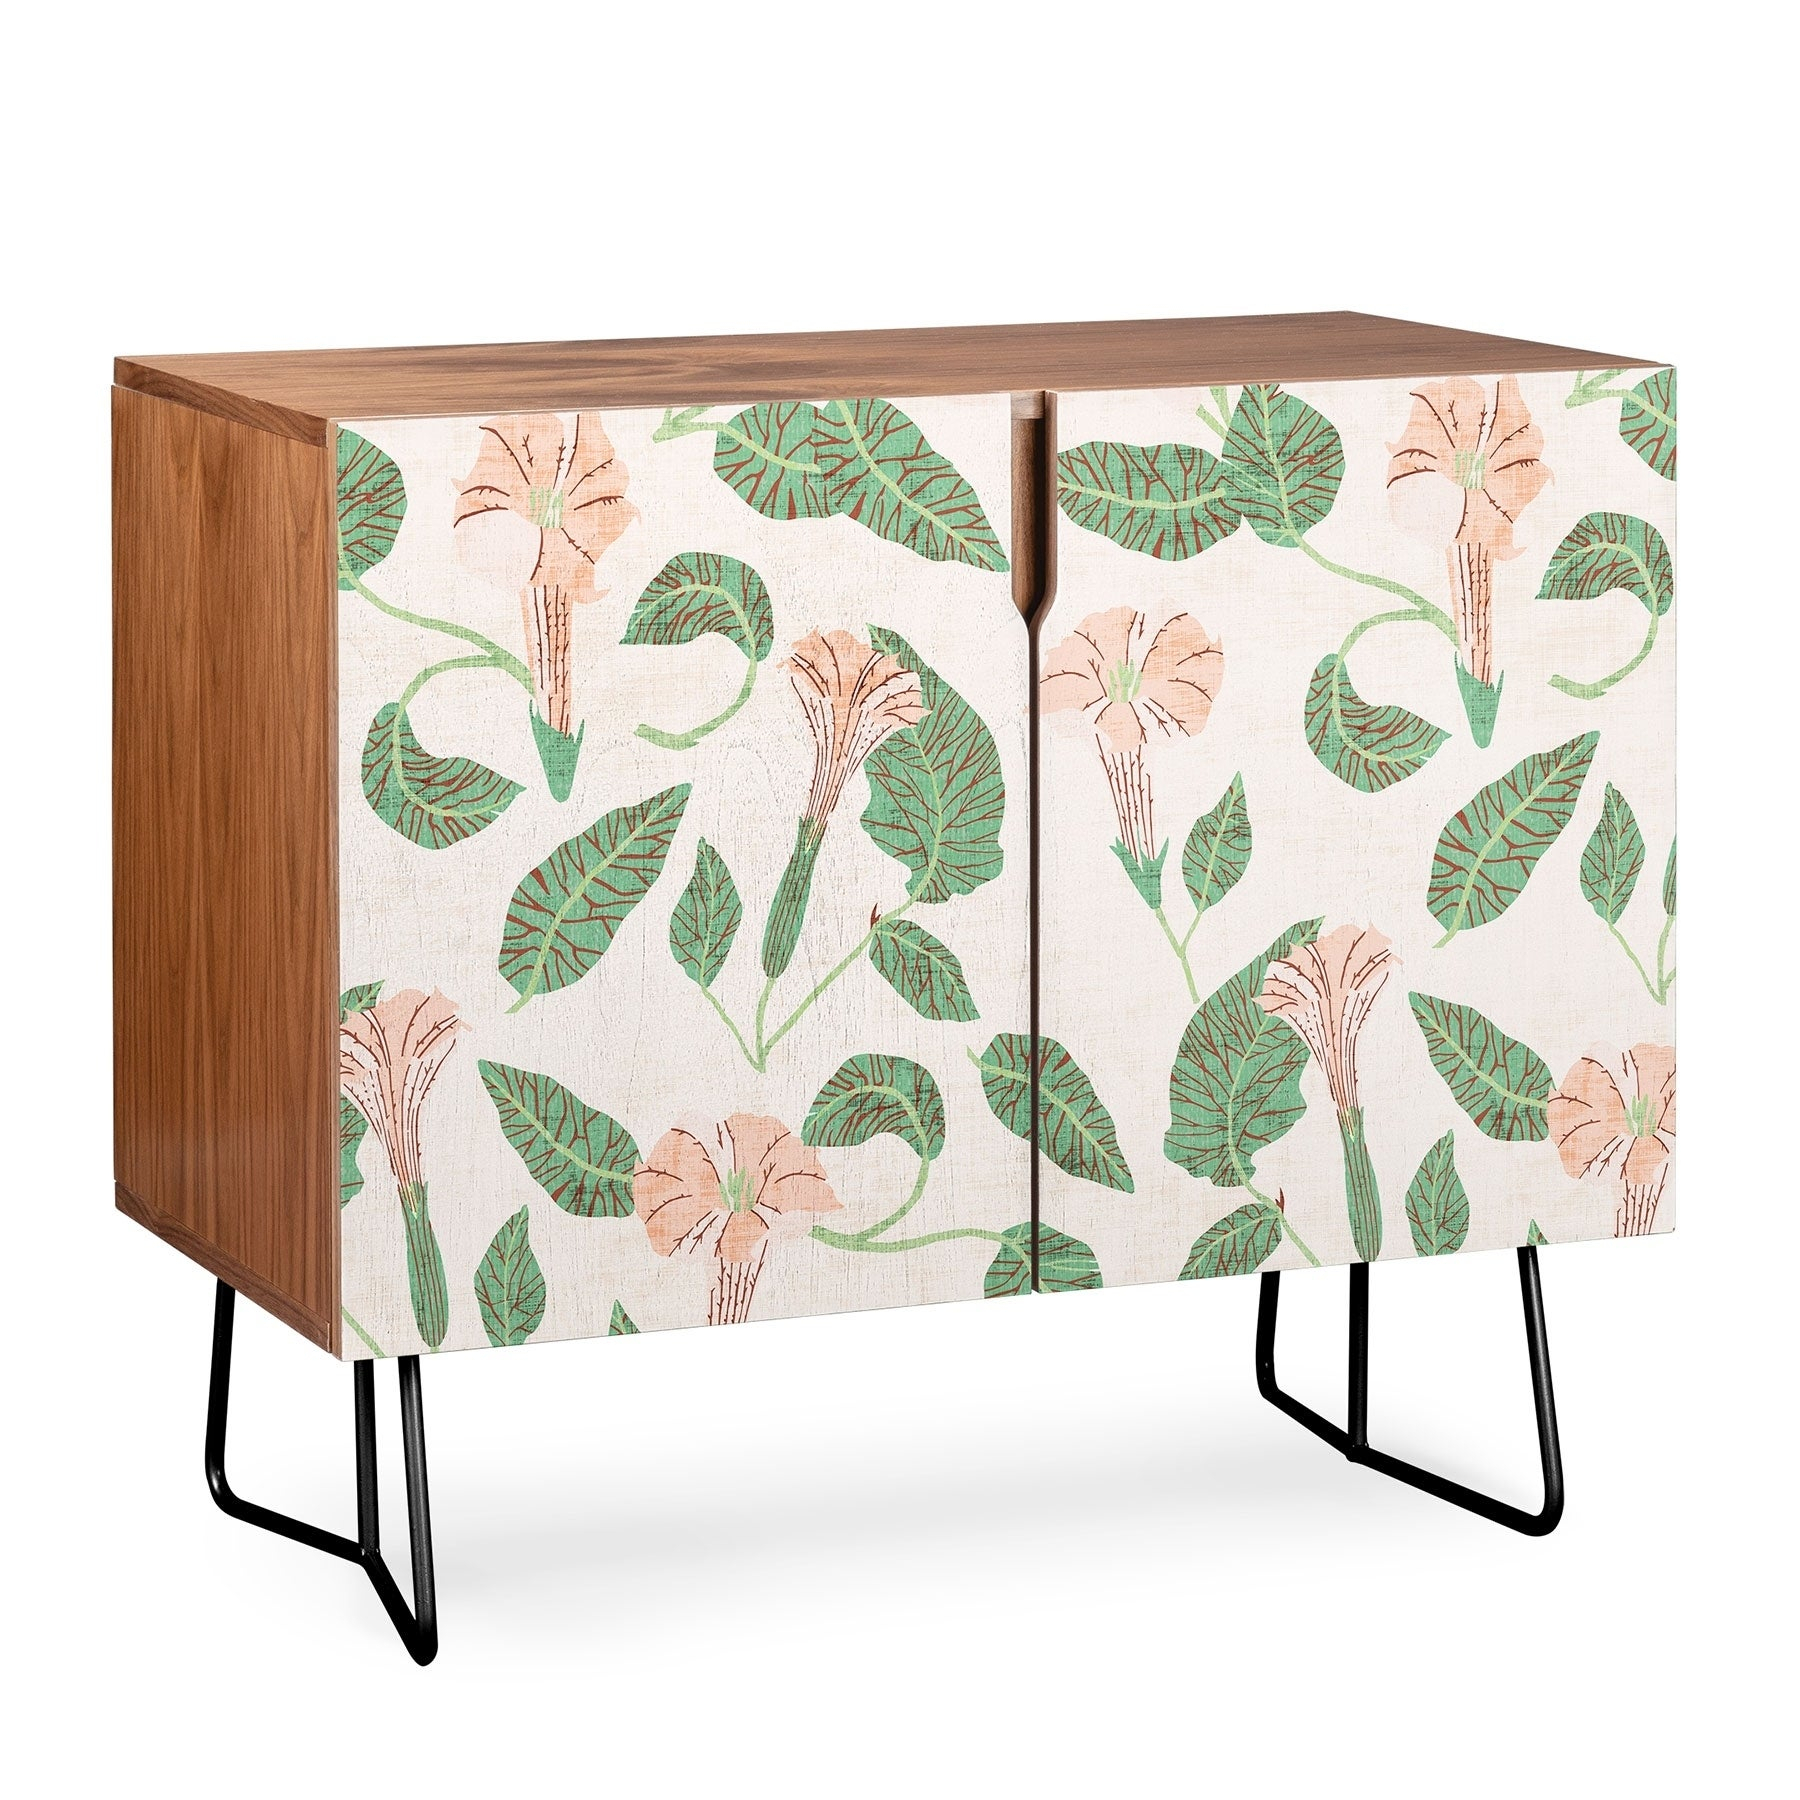 Deny Designs Desert Moonflower Credenza (Birch Or Walnut, 2 Leg Options) With Regard To Oenomel Credenzas (Gallery 22 of 30)